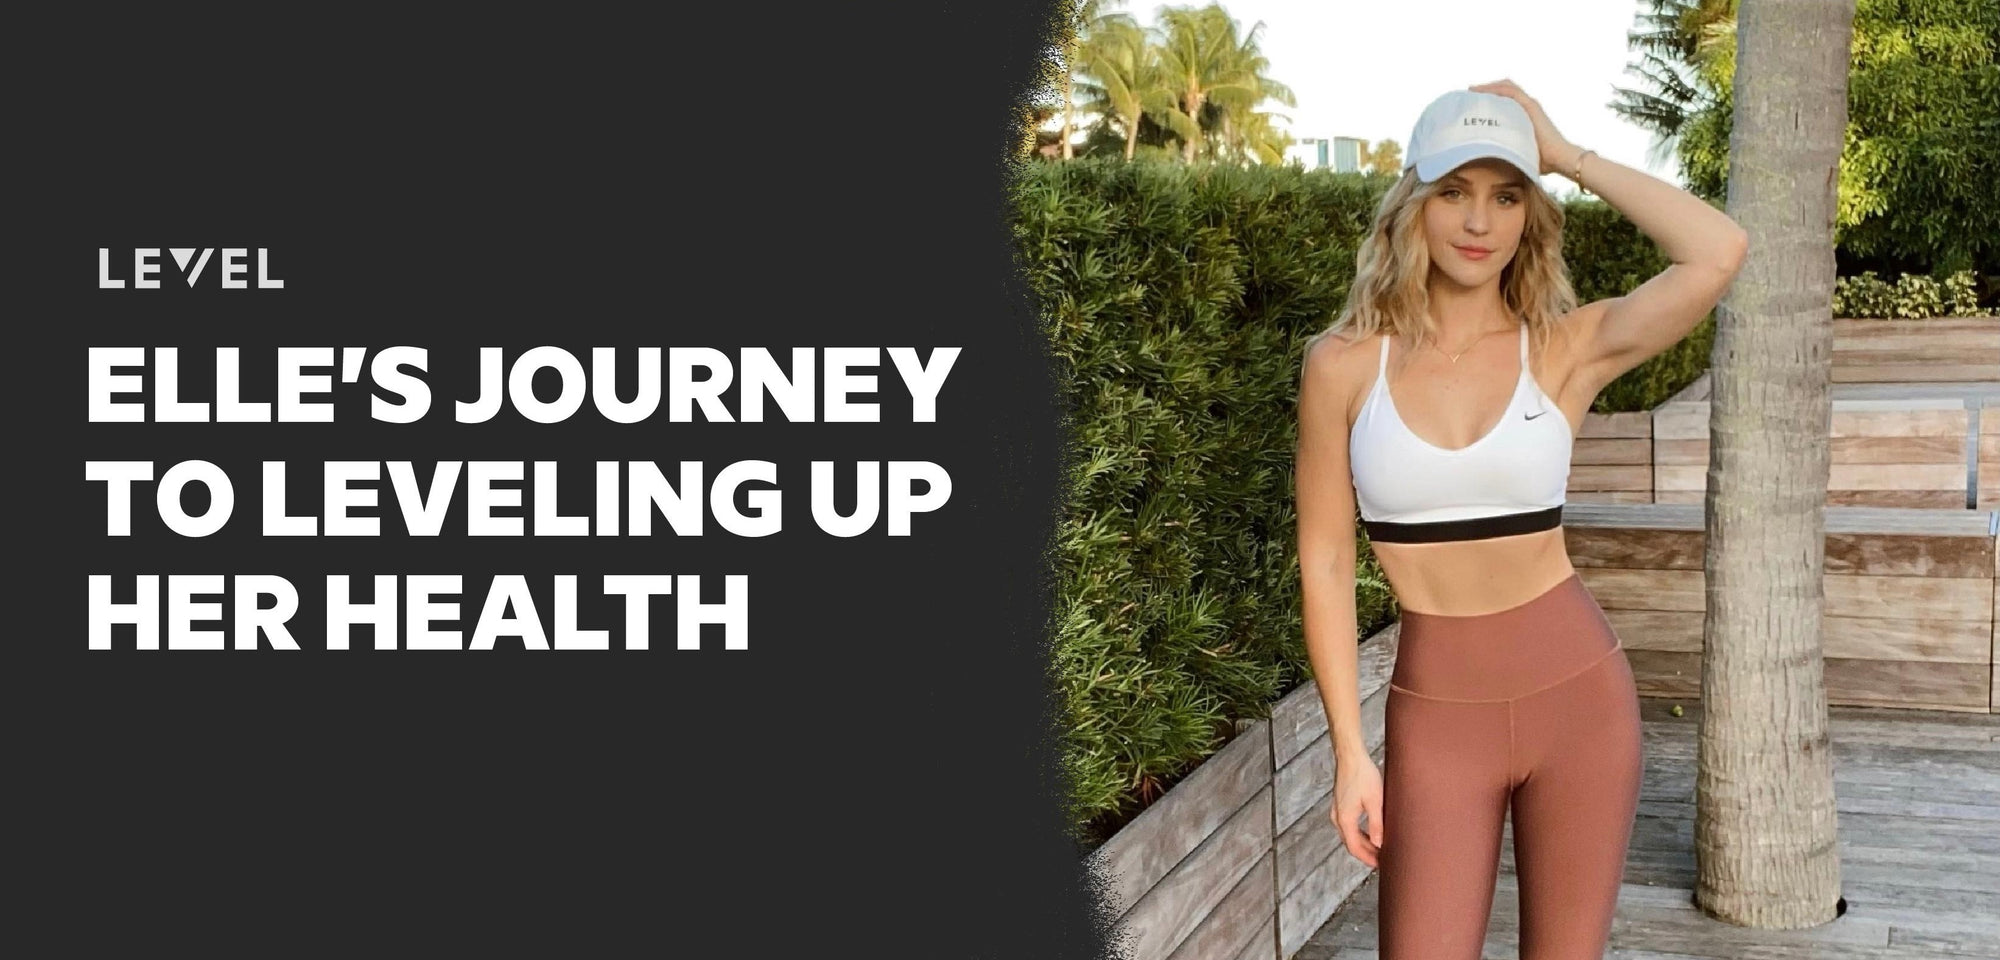 Elle's Journey to Leveling Up Her Health